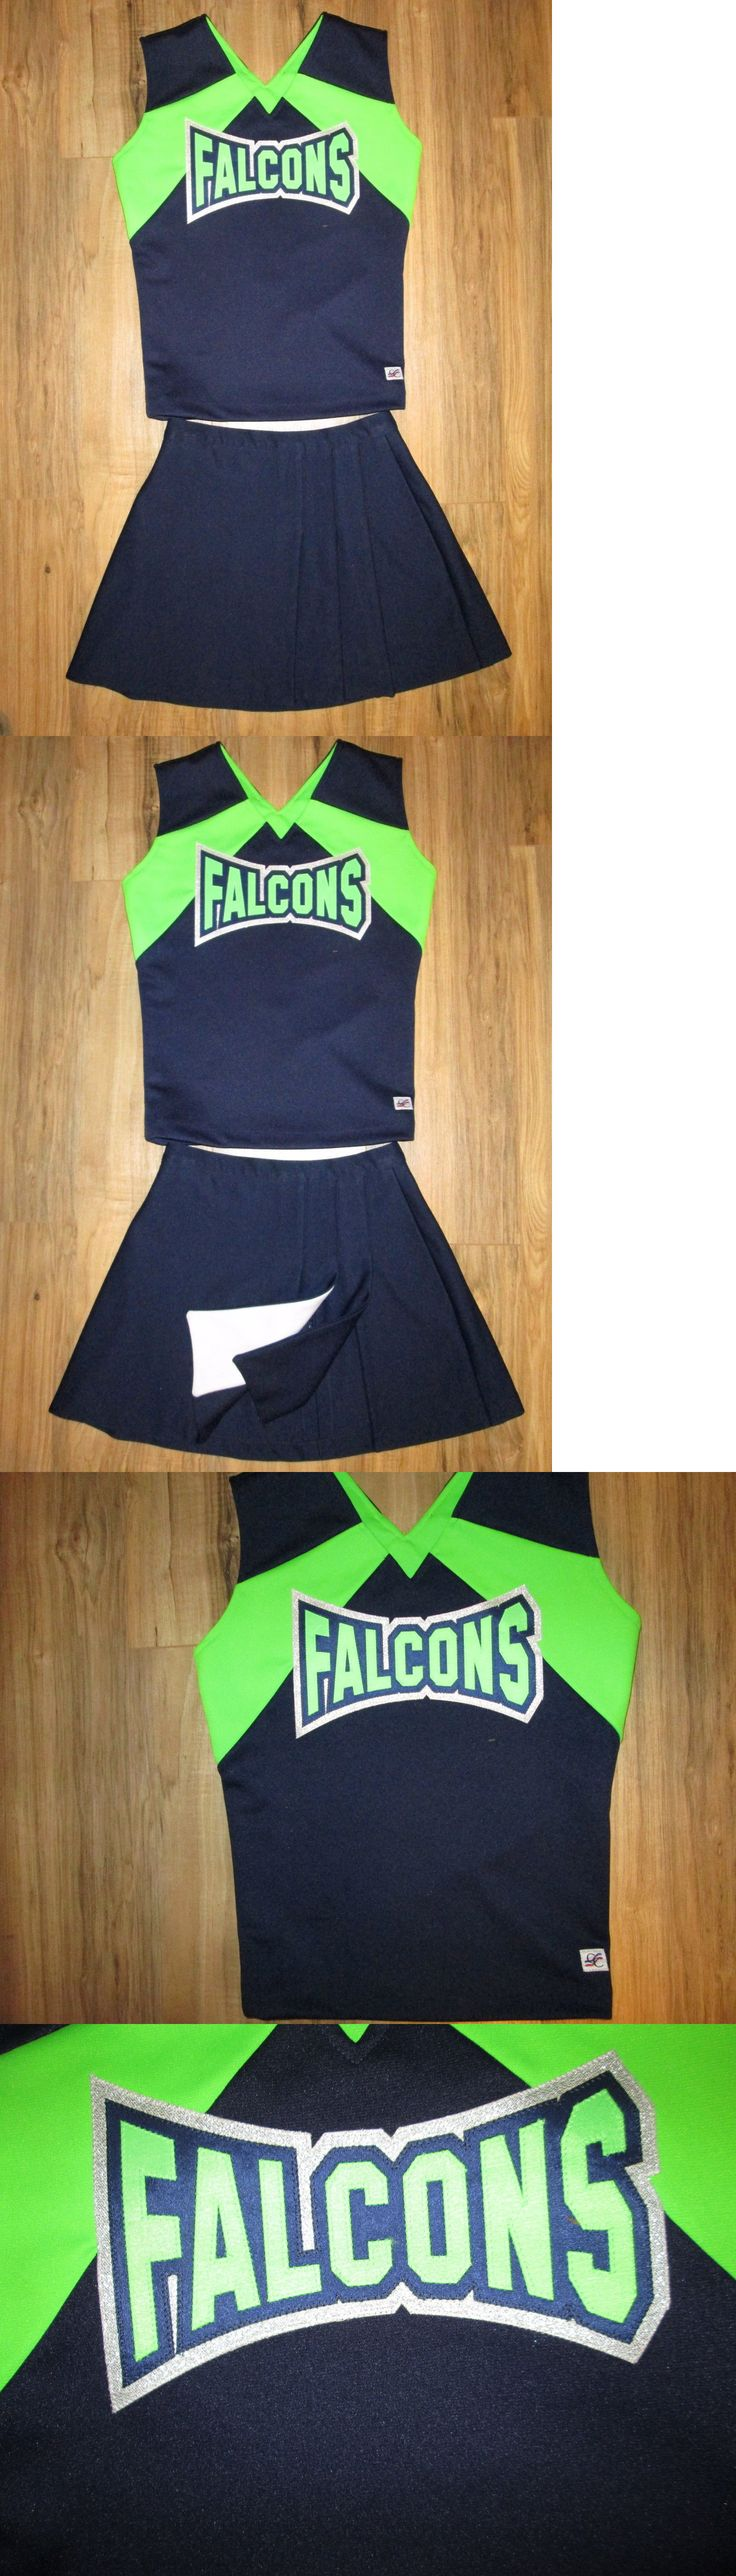 Cheerleading 66832: Falcons Cheerleader Uniform Outfit Fun Costume Navy Neon Green 34 Top 25 Waist -> BUY IT NOW ONLY: $36.0 on eBay!